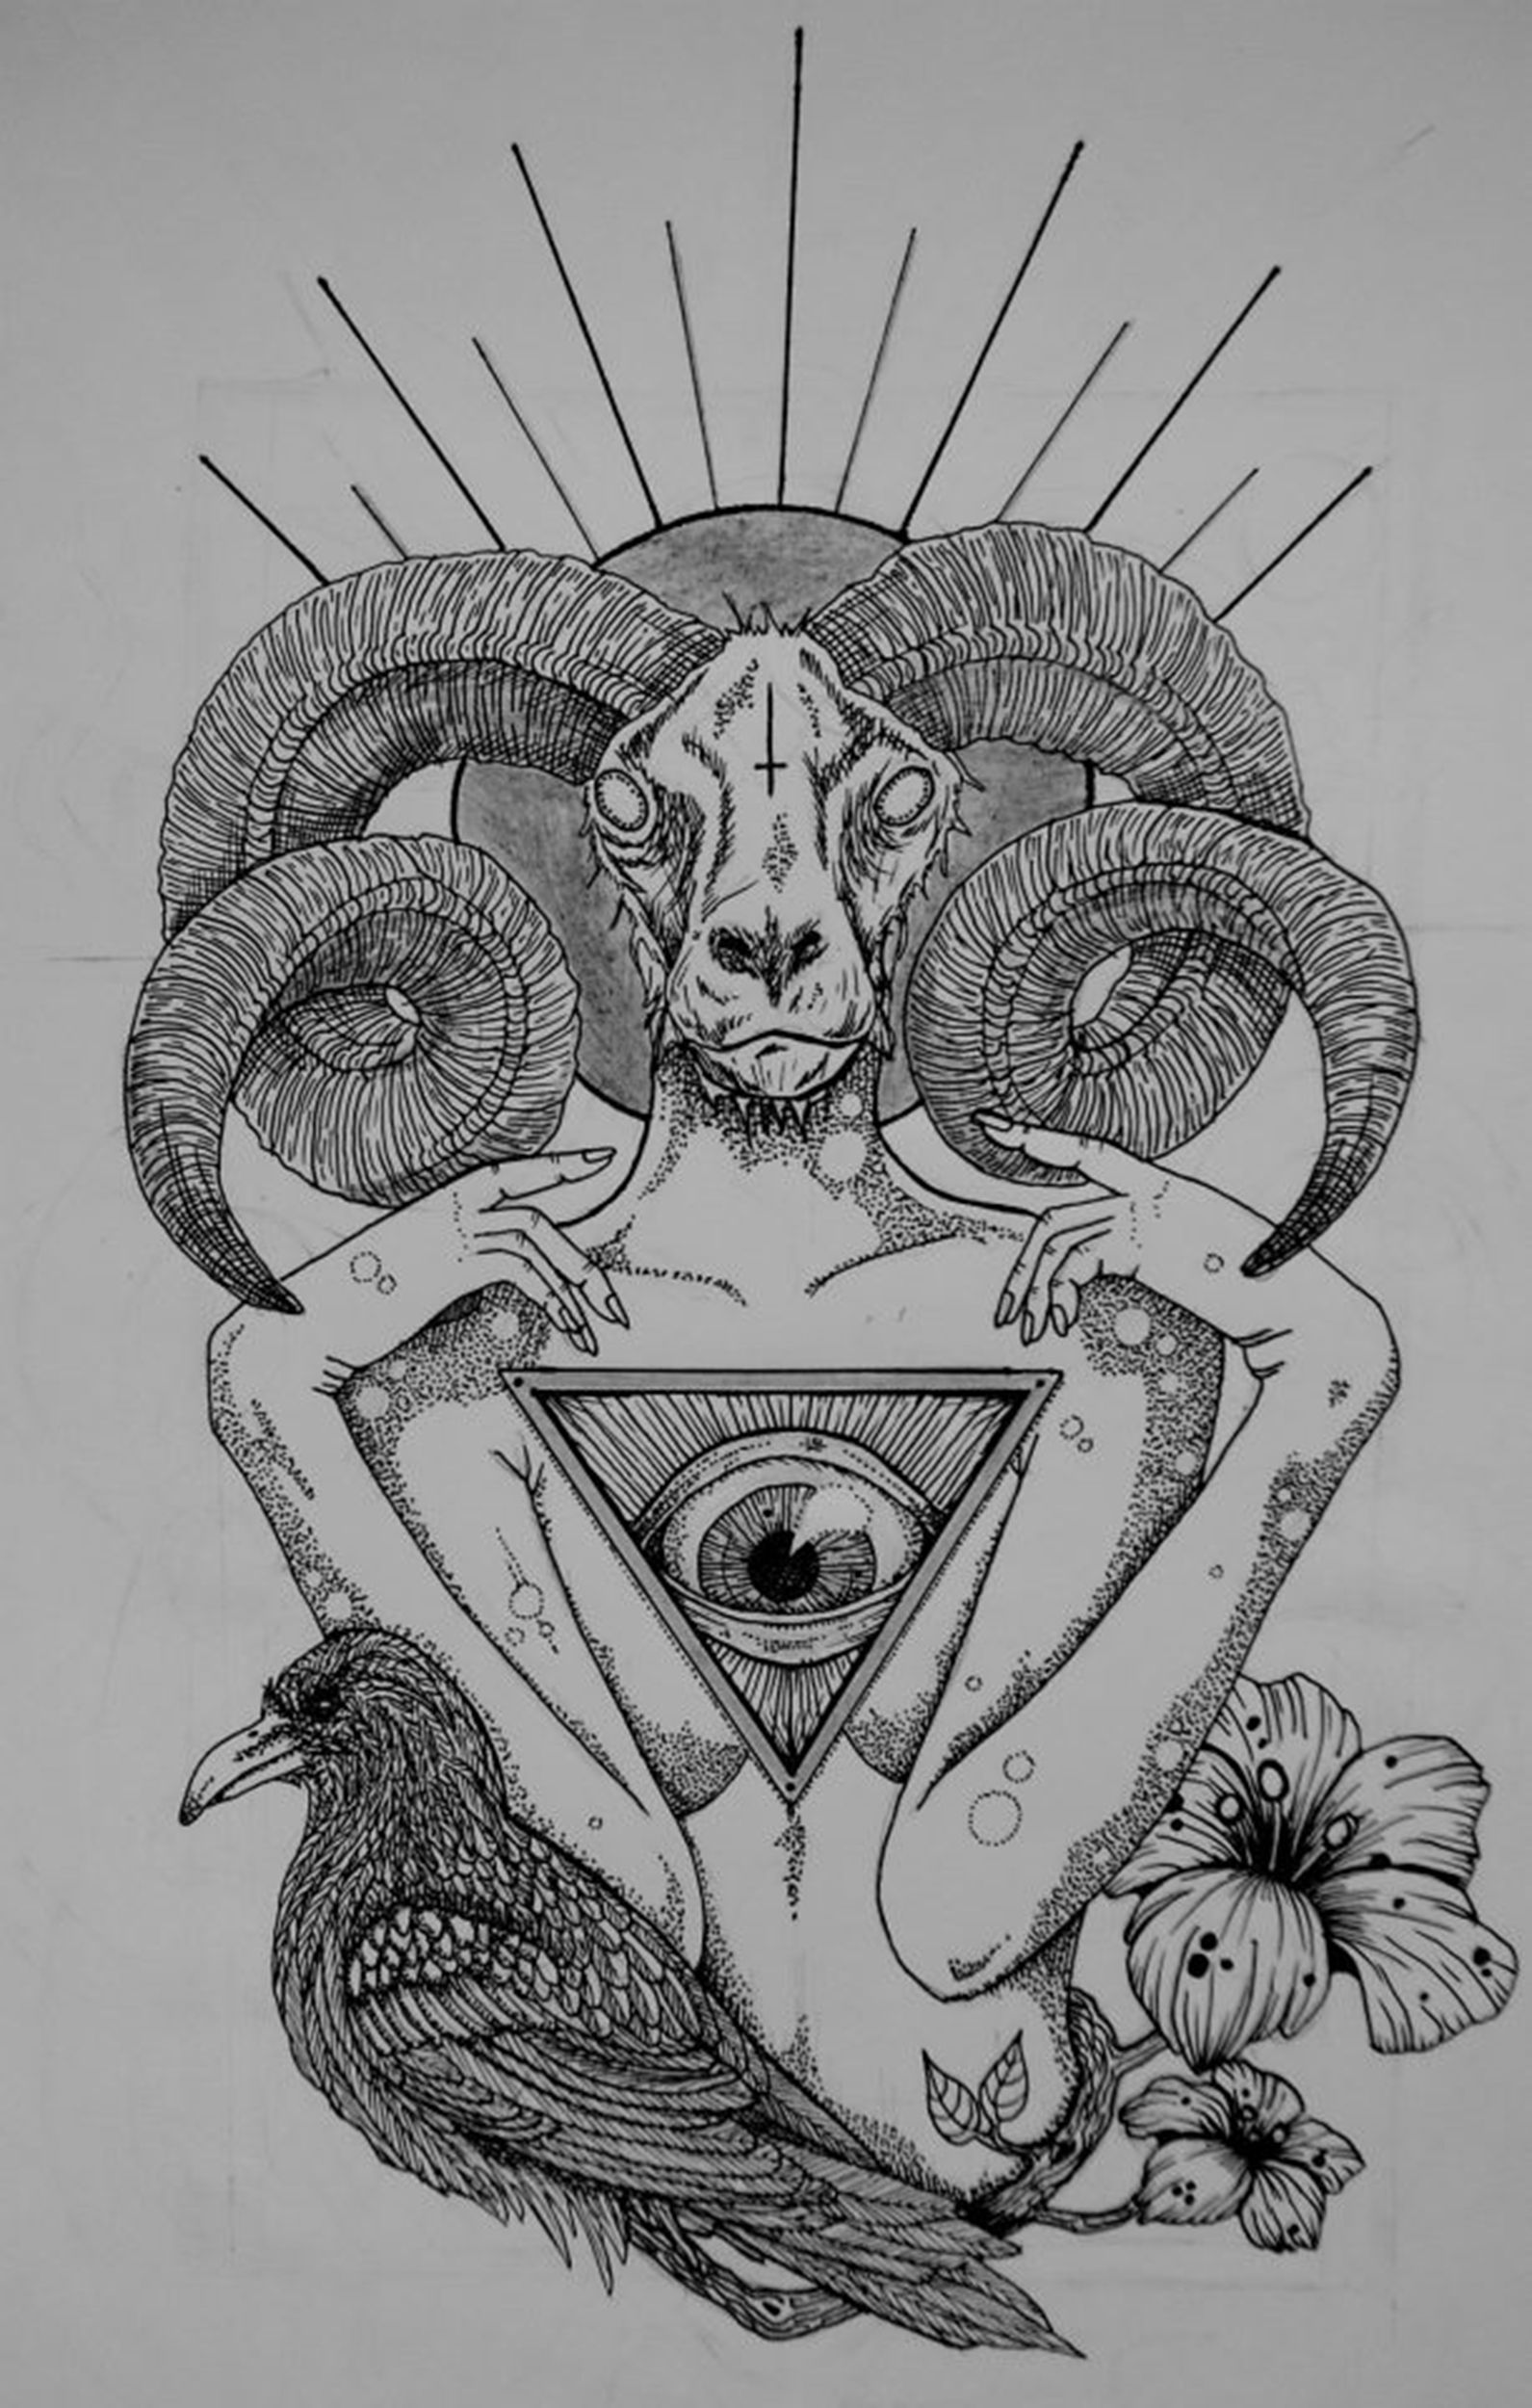 image freeuse stock Raven a little morbid. Baphomet drawing realistic